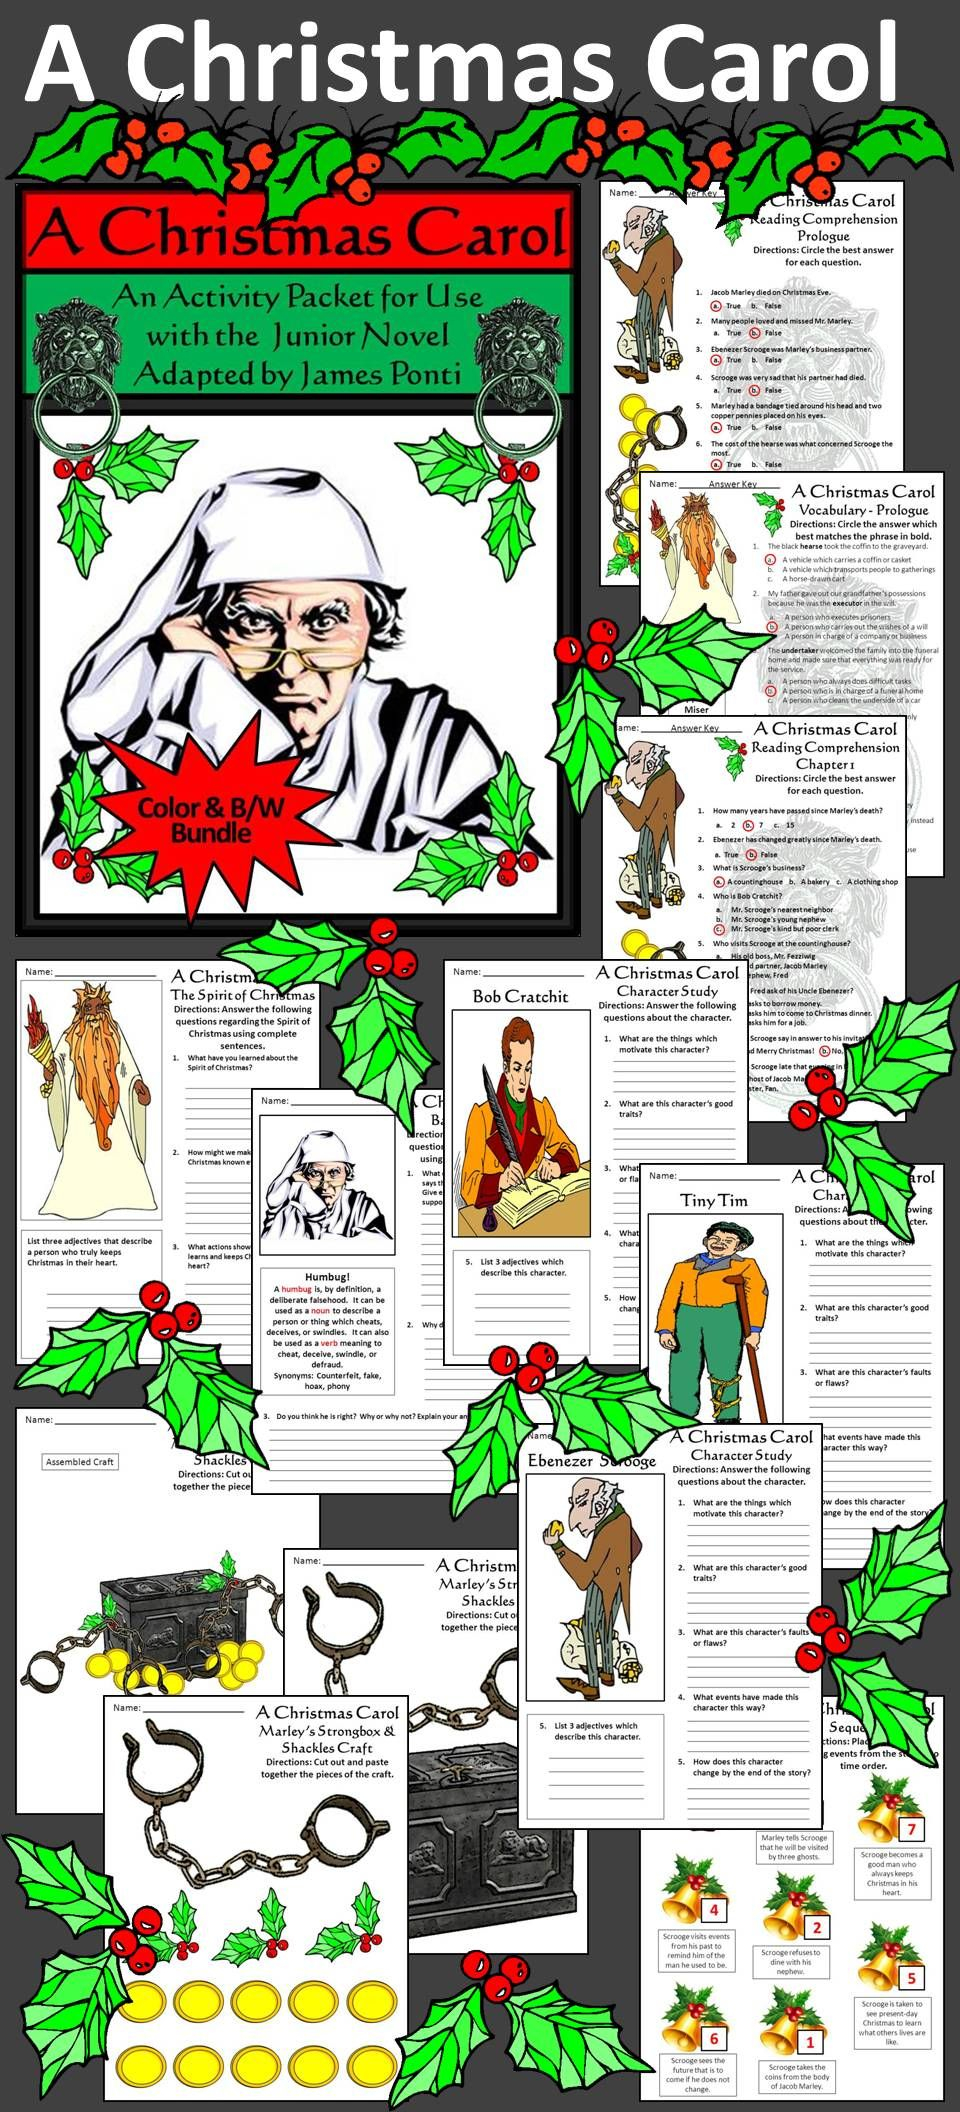 A Christmas Carol Activity Packet: Complements The Book, A